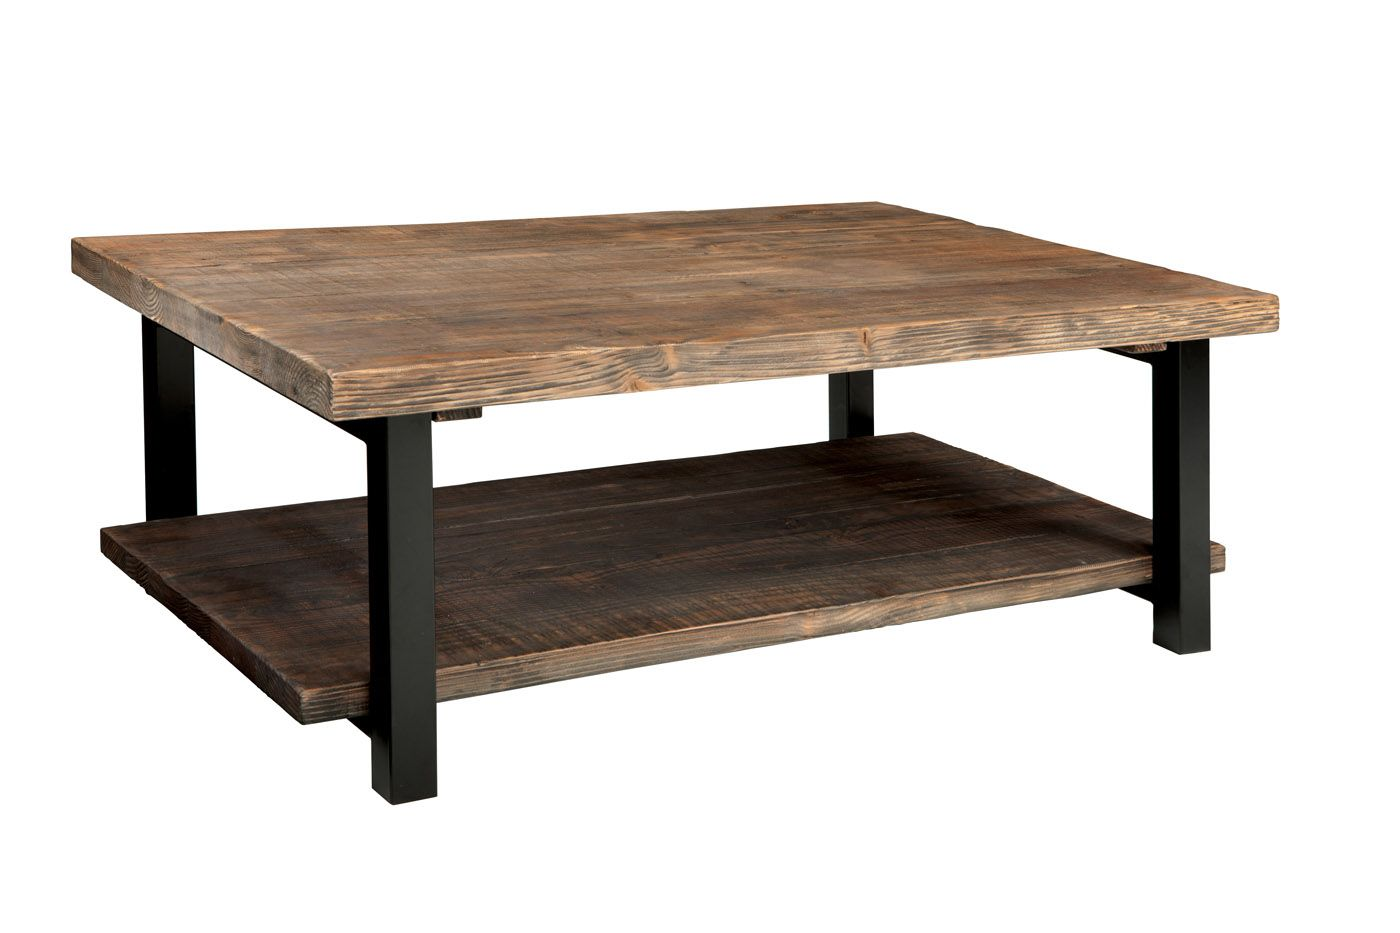 This Pomona 48 Inch Wide Coffee Table Is Perfect In Front Of Your Favorite Couch The Shelf Below Provides Coffee Table Cool Coffee Tables Rustic Coffee Tables